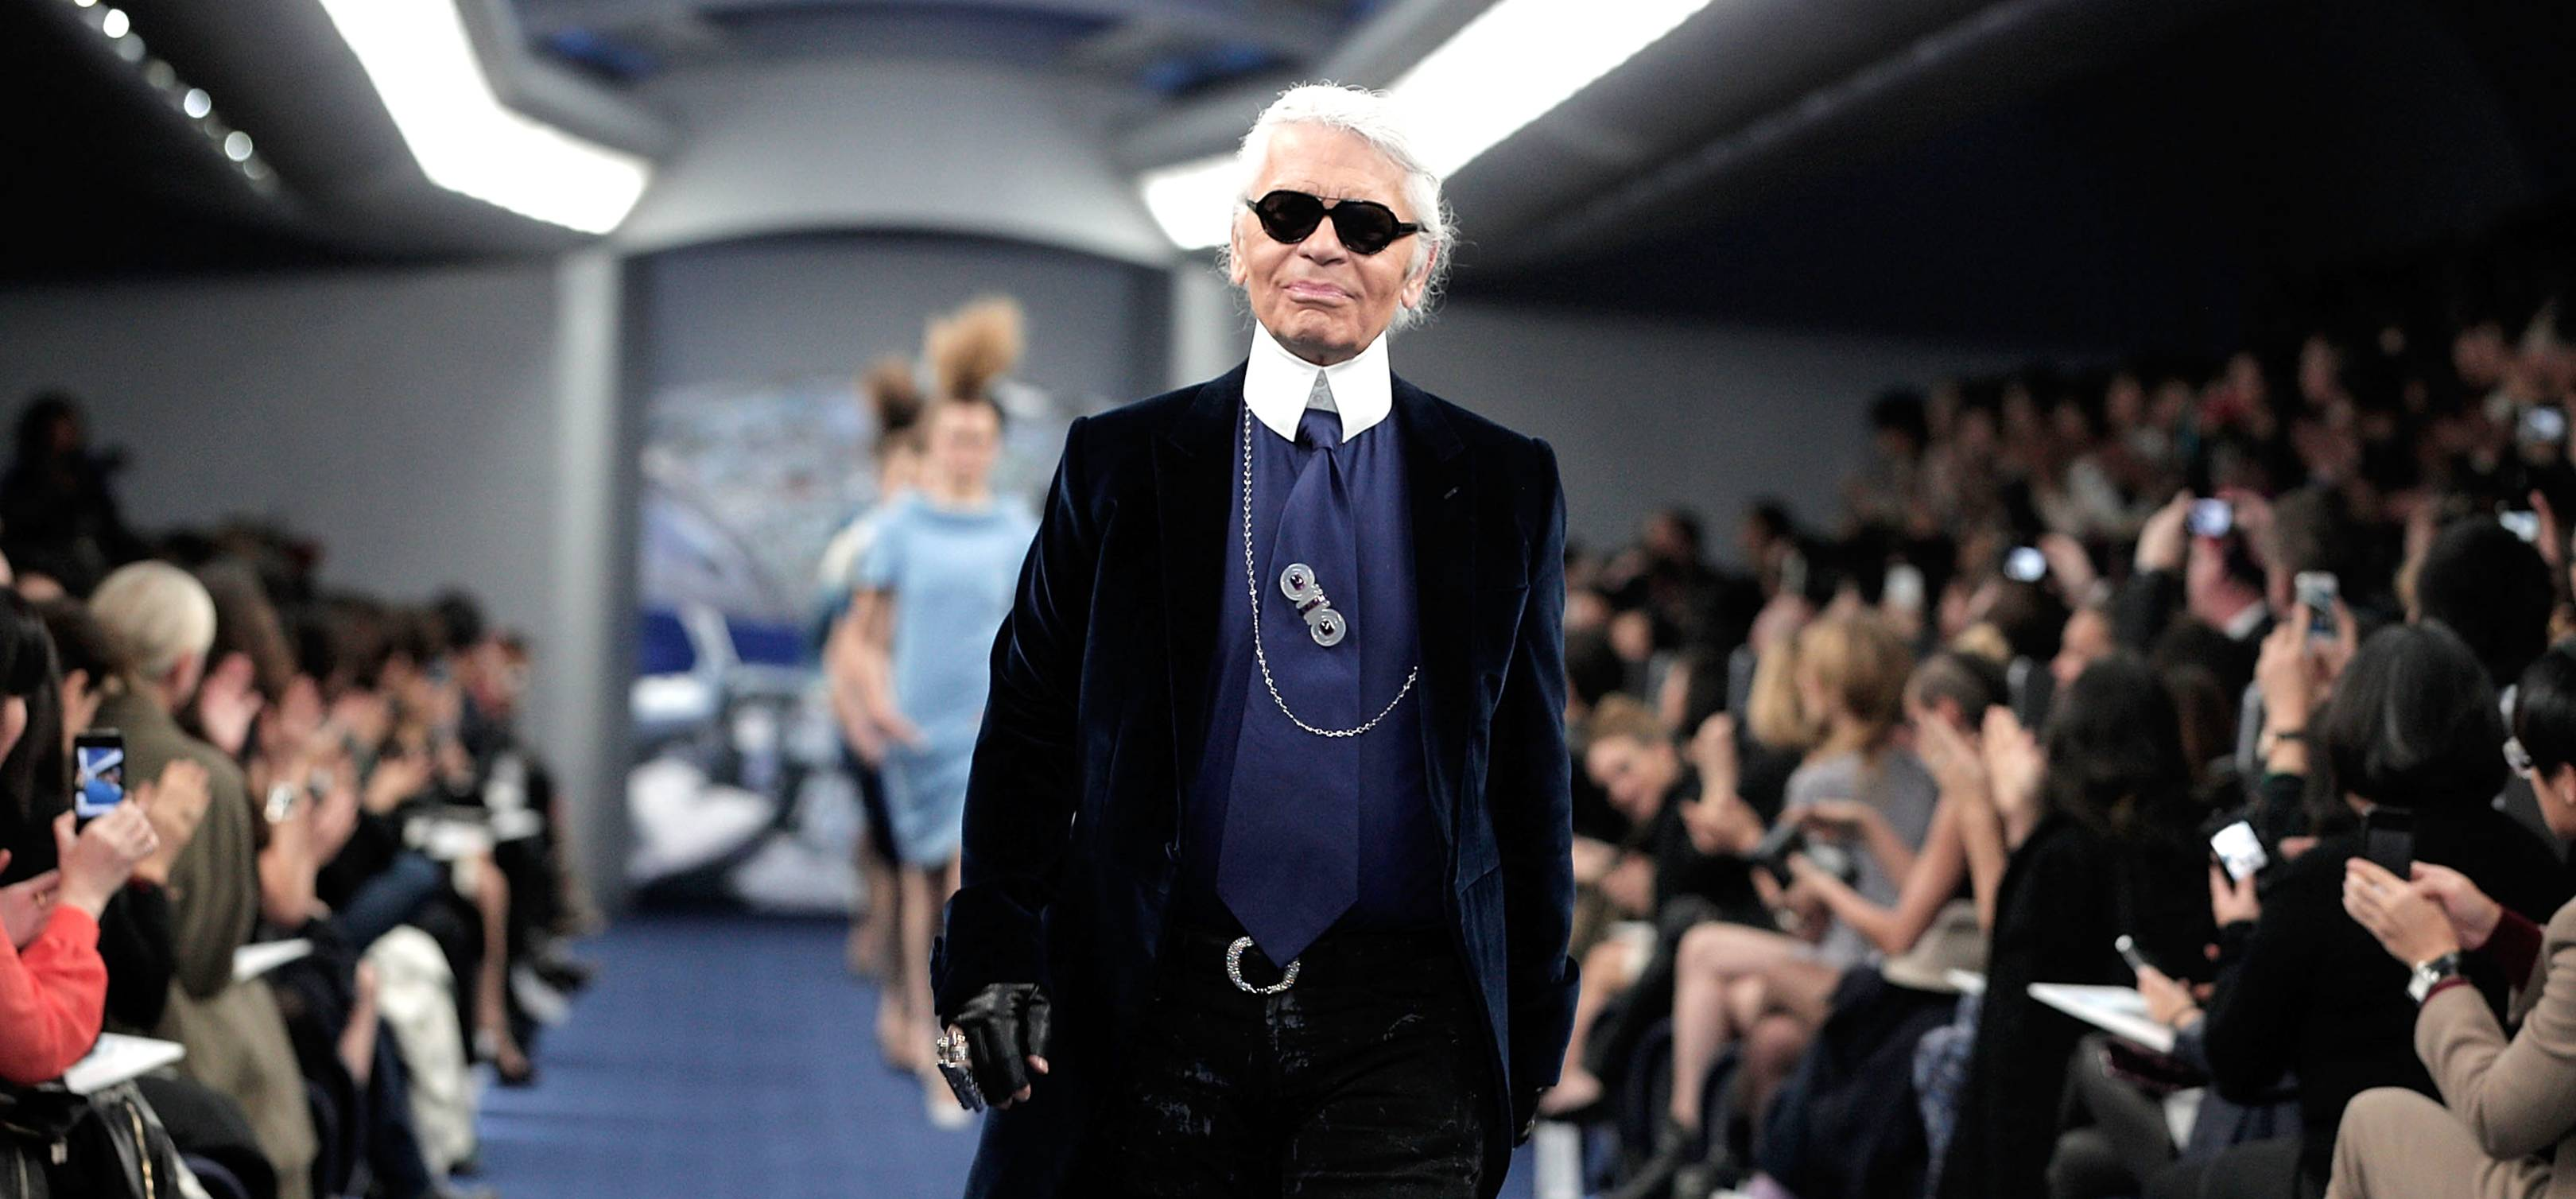 48486a03394629 Karl Lagerfeld Quotes: The Most Famous Quotes From The Chanel Designer |  Glamour UK